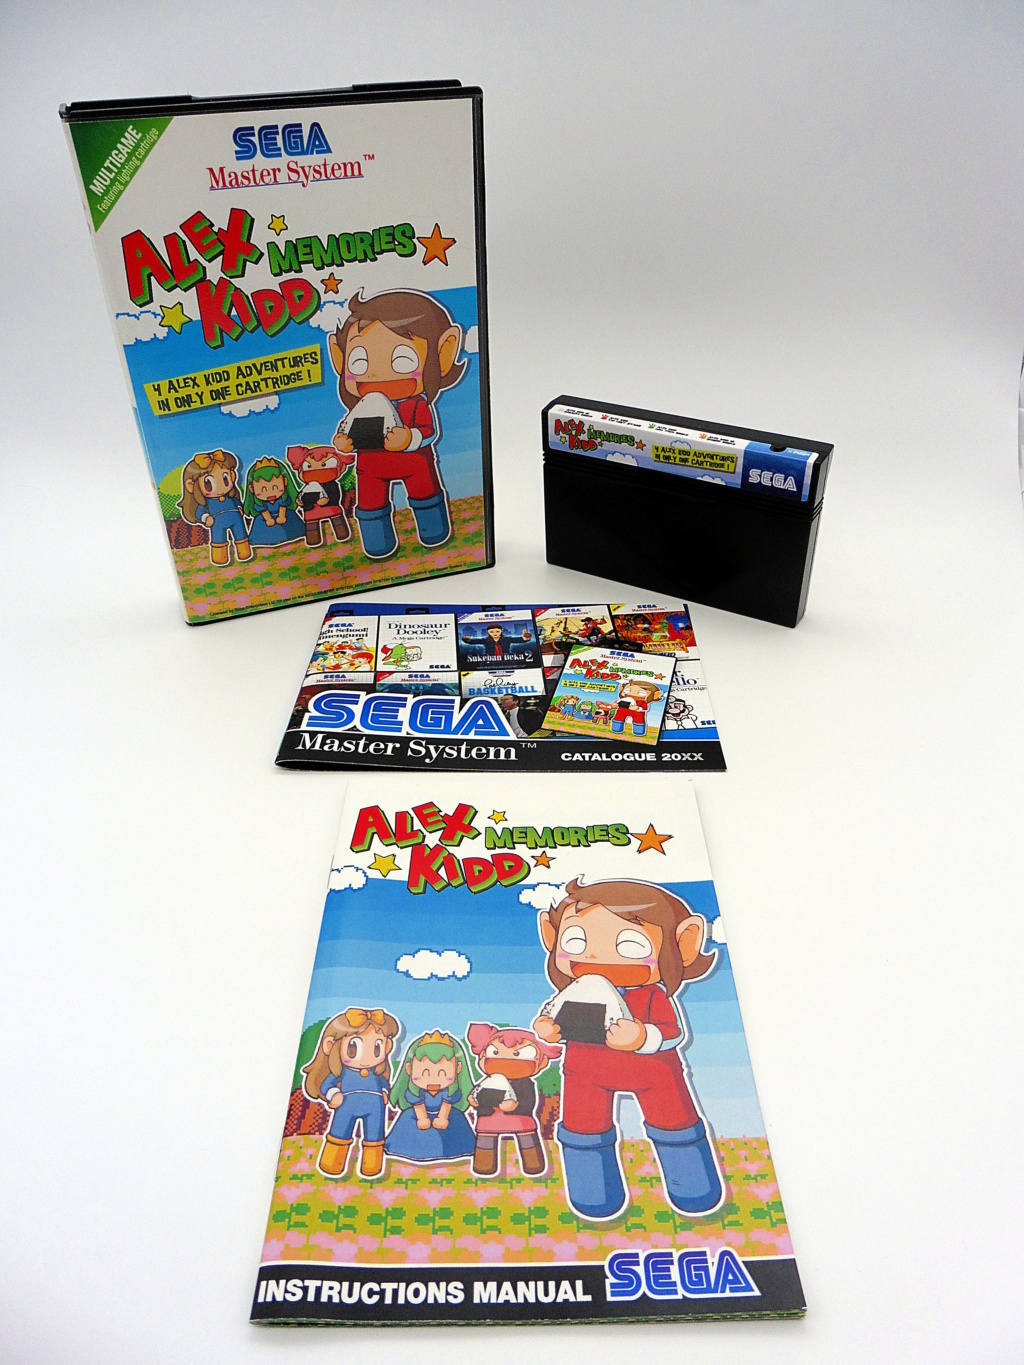 Alex Kidd Memories Cartmo14